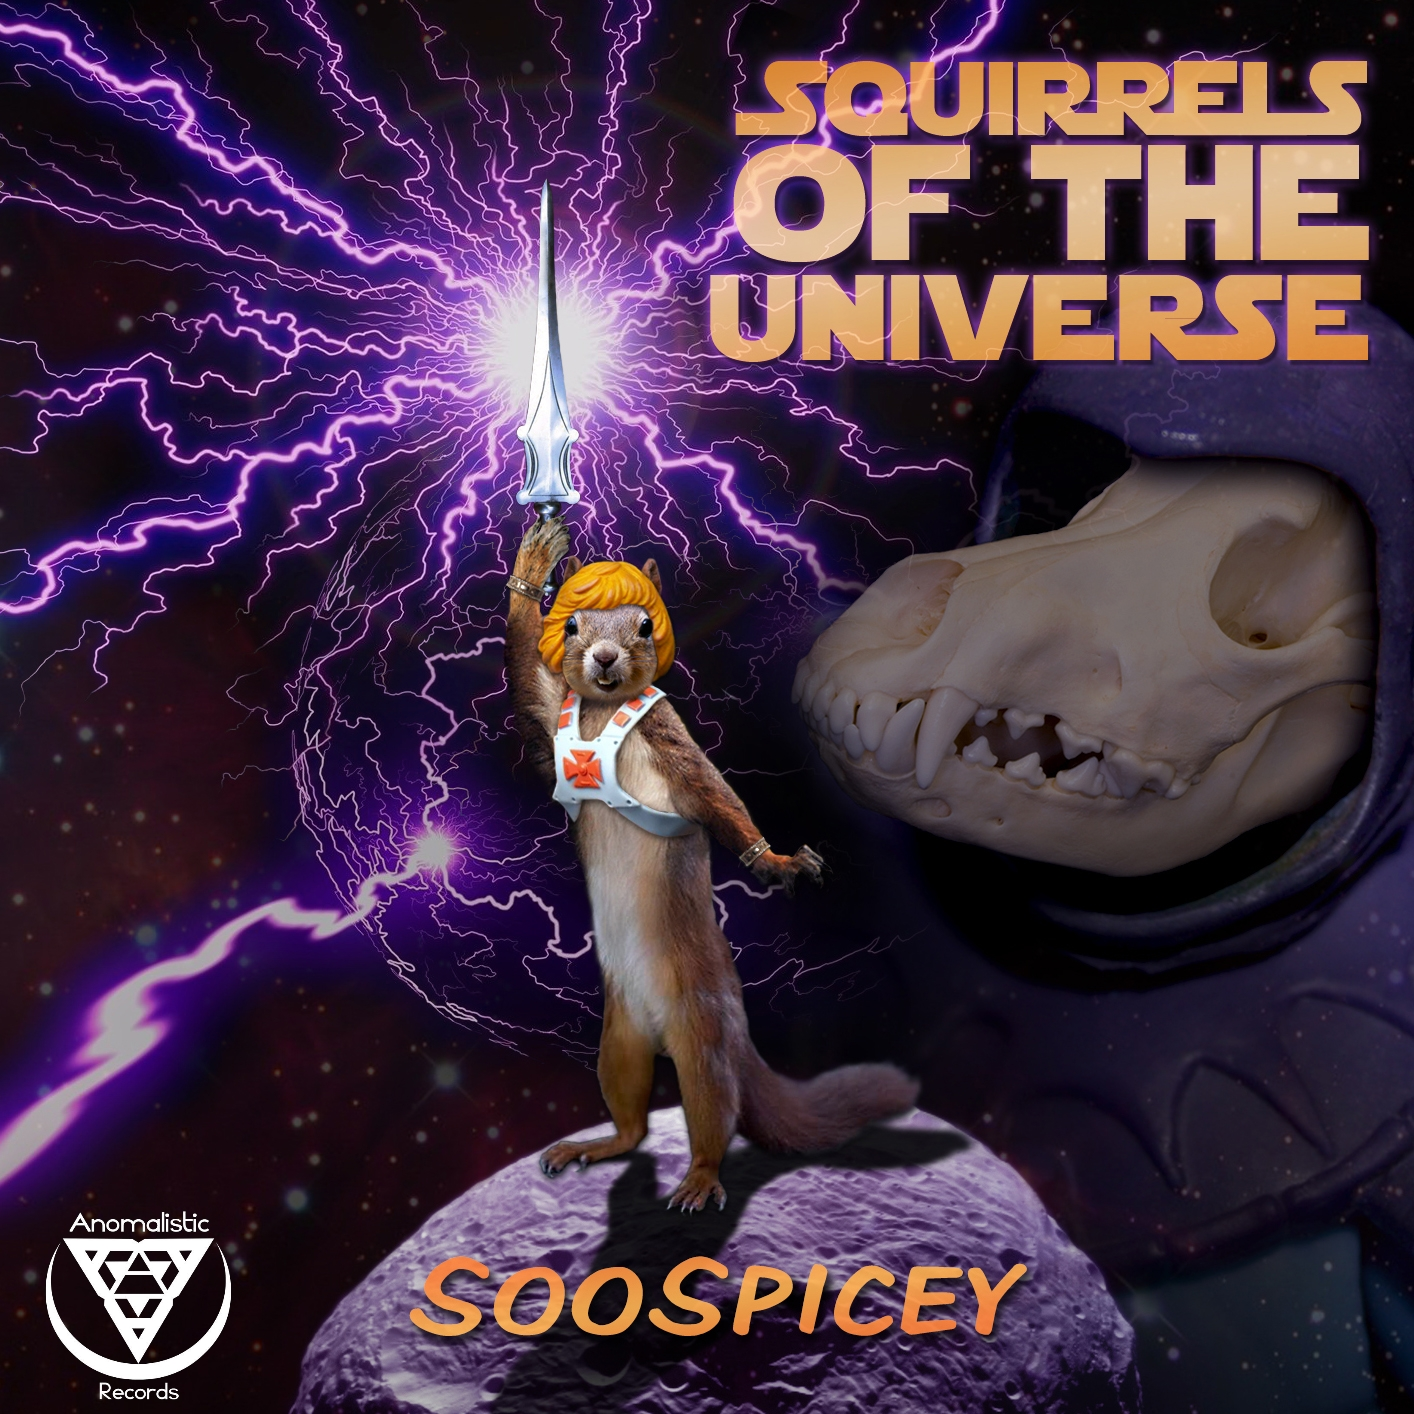 Squirrels-of-the-Universe w-logo